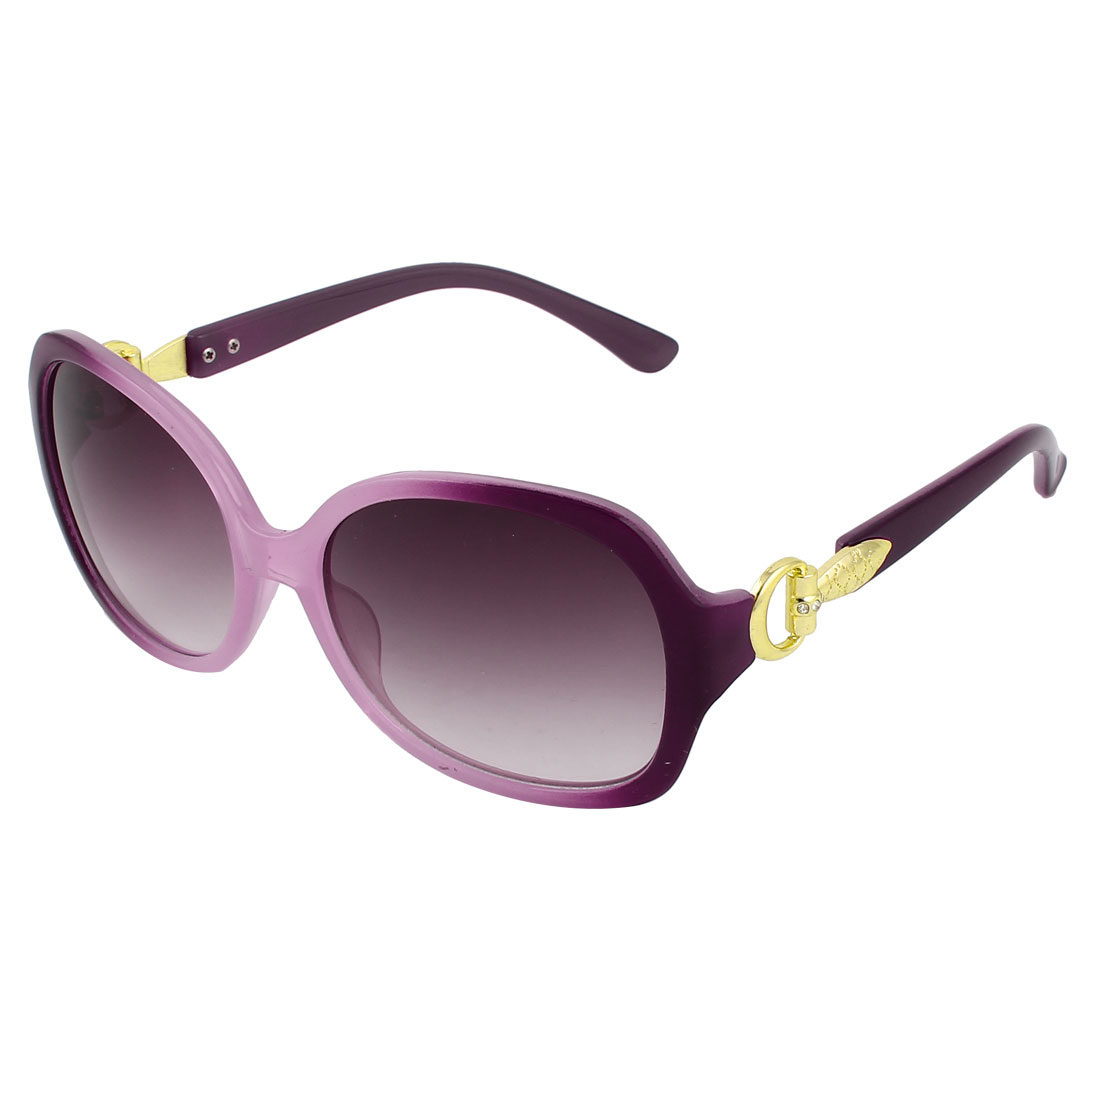 Lady Purple Plastic Frame Single Bridge Full Rim Sunglasses Eyeglasses